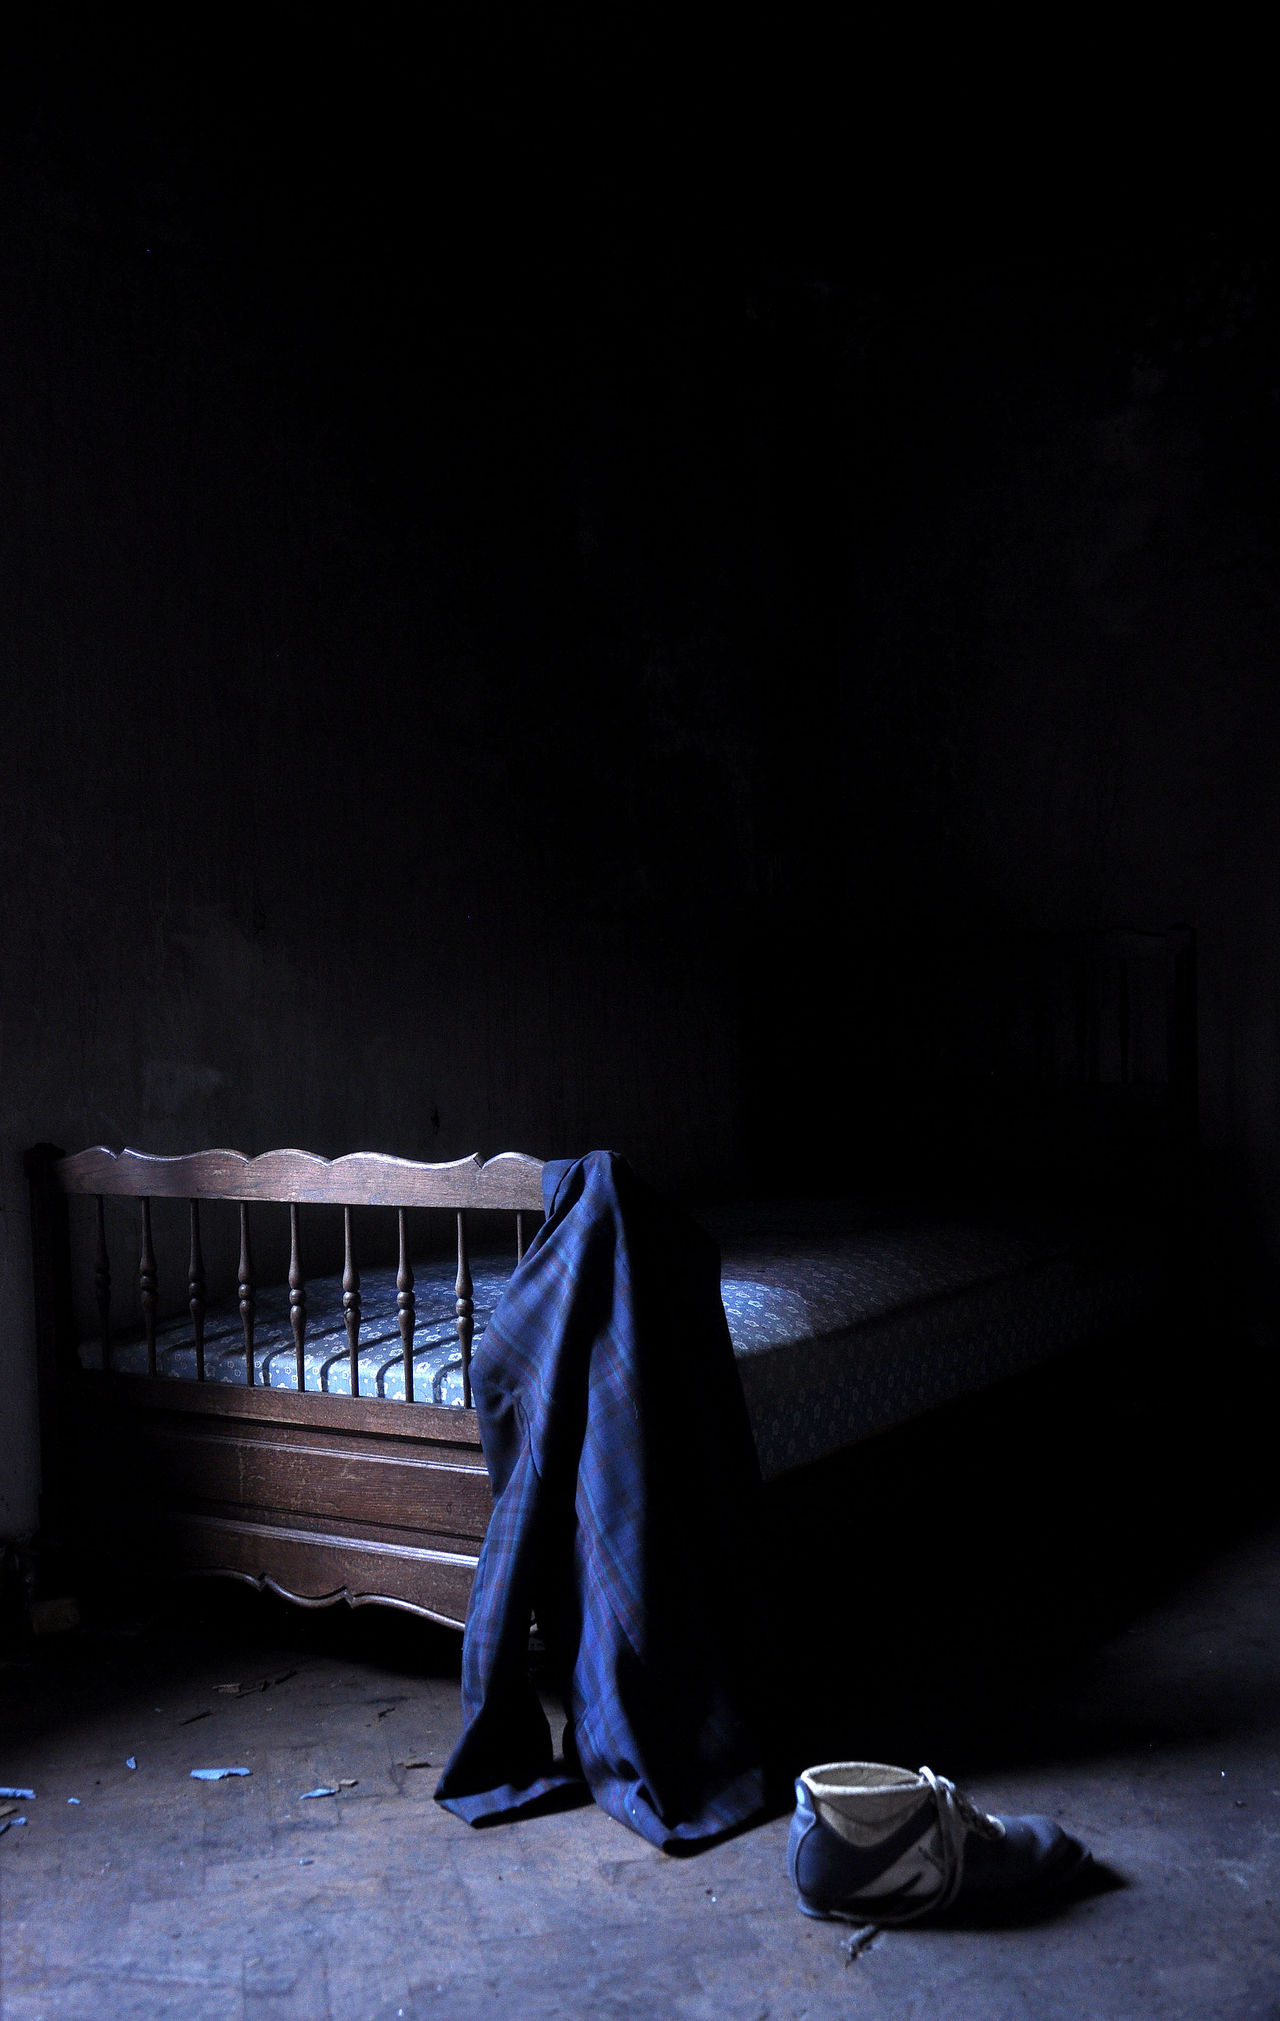 #abandonedhouse #bed #darkness #forgotten #jacket #oldbed #urbanexploration  #Urbanexploring #urbex